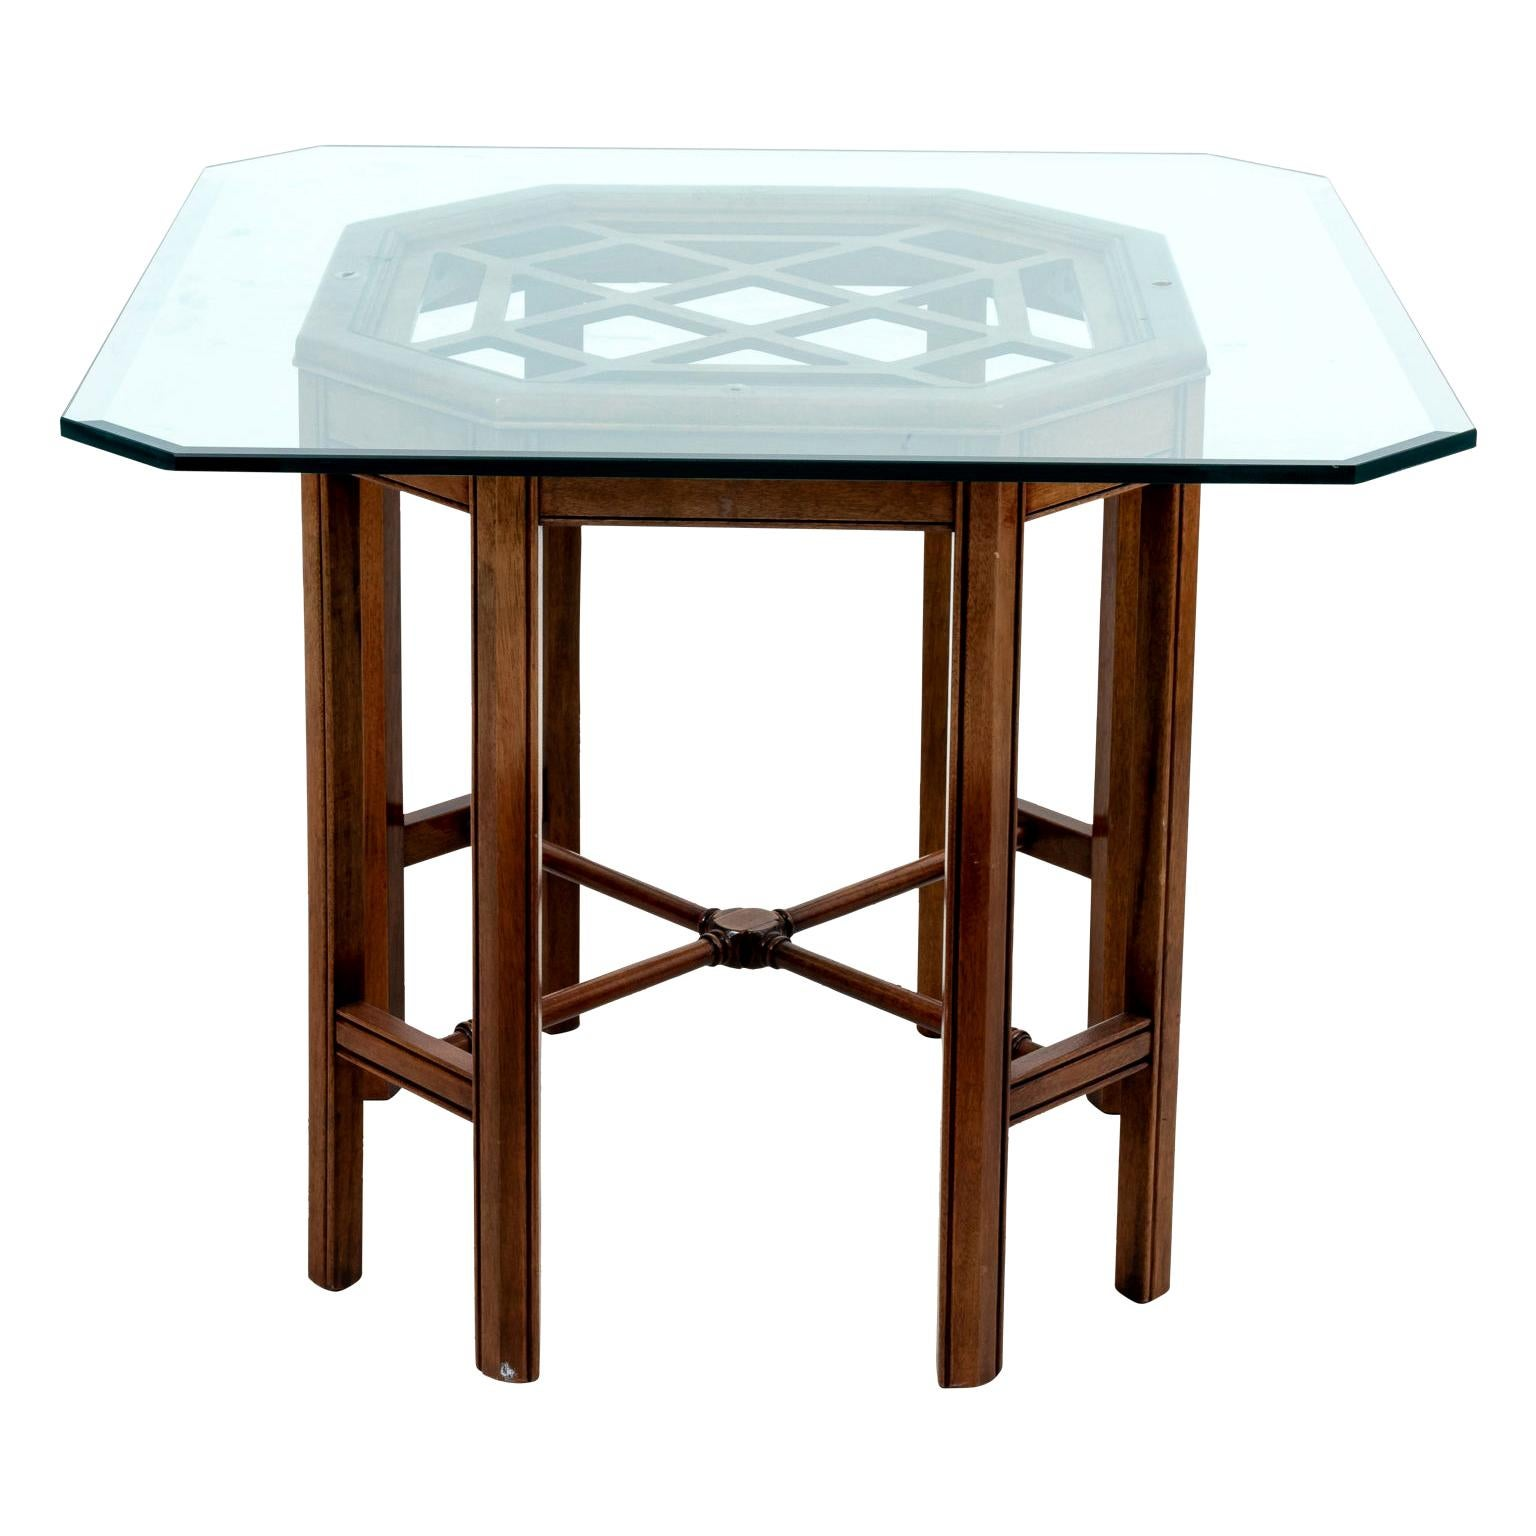 Chinese Chippendale Style Center Table